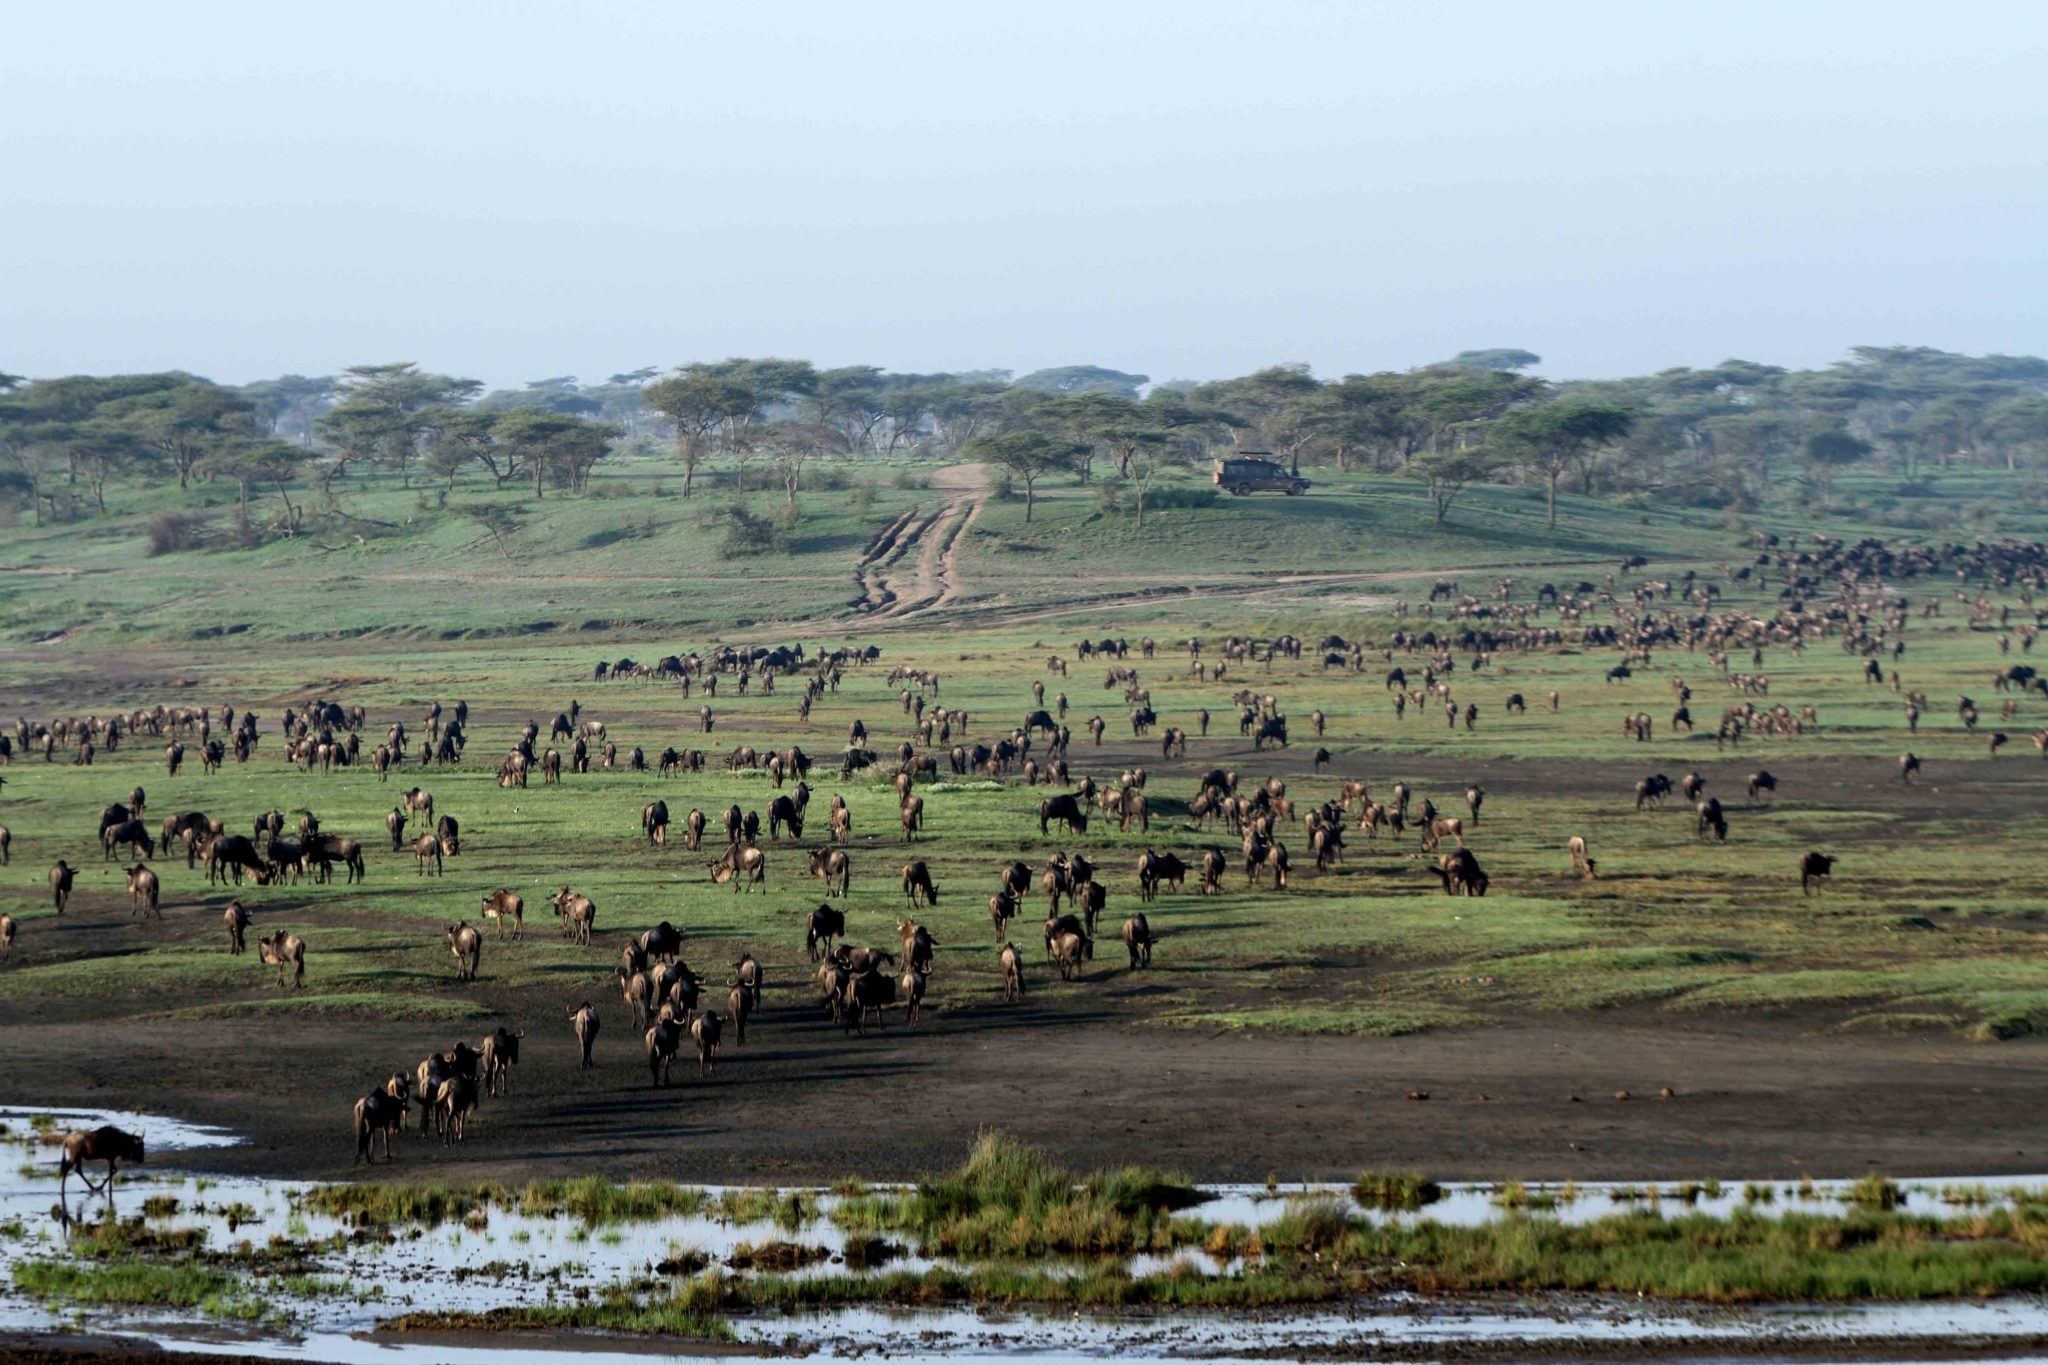 Tanzania Safari Serengeti Great Migration